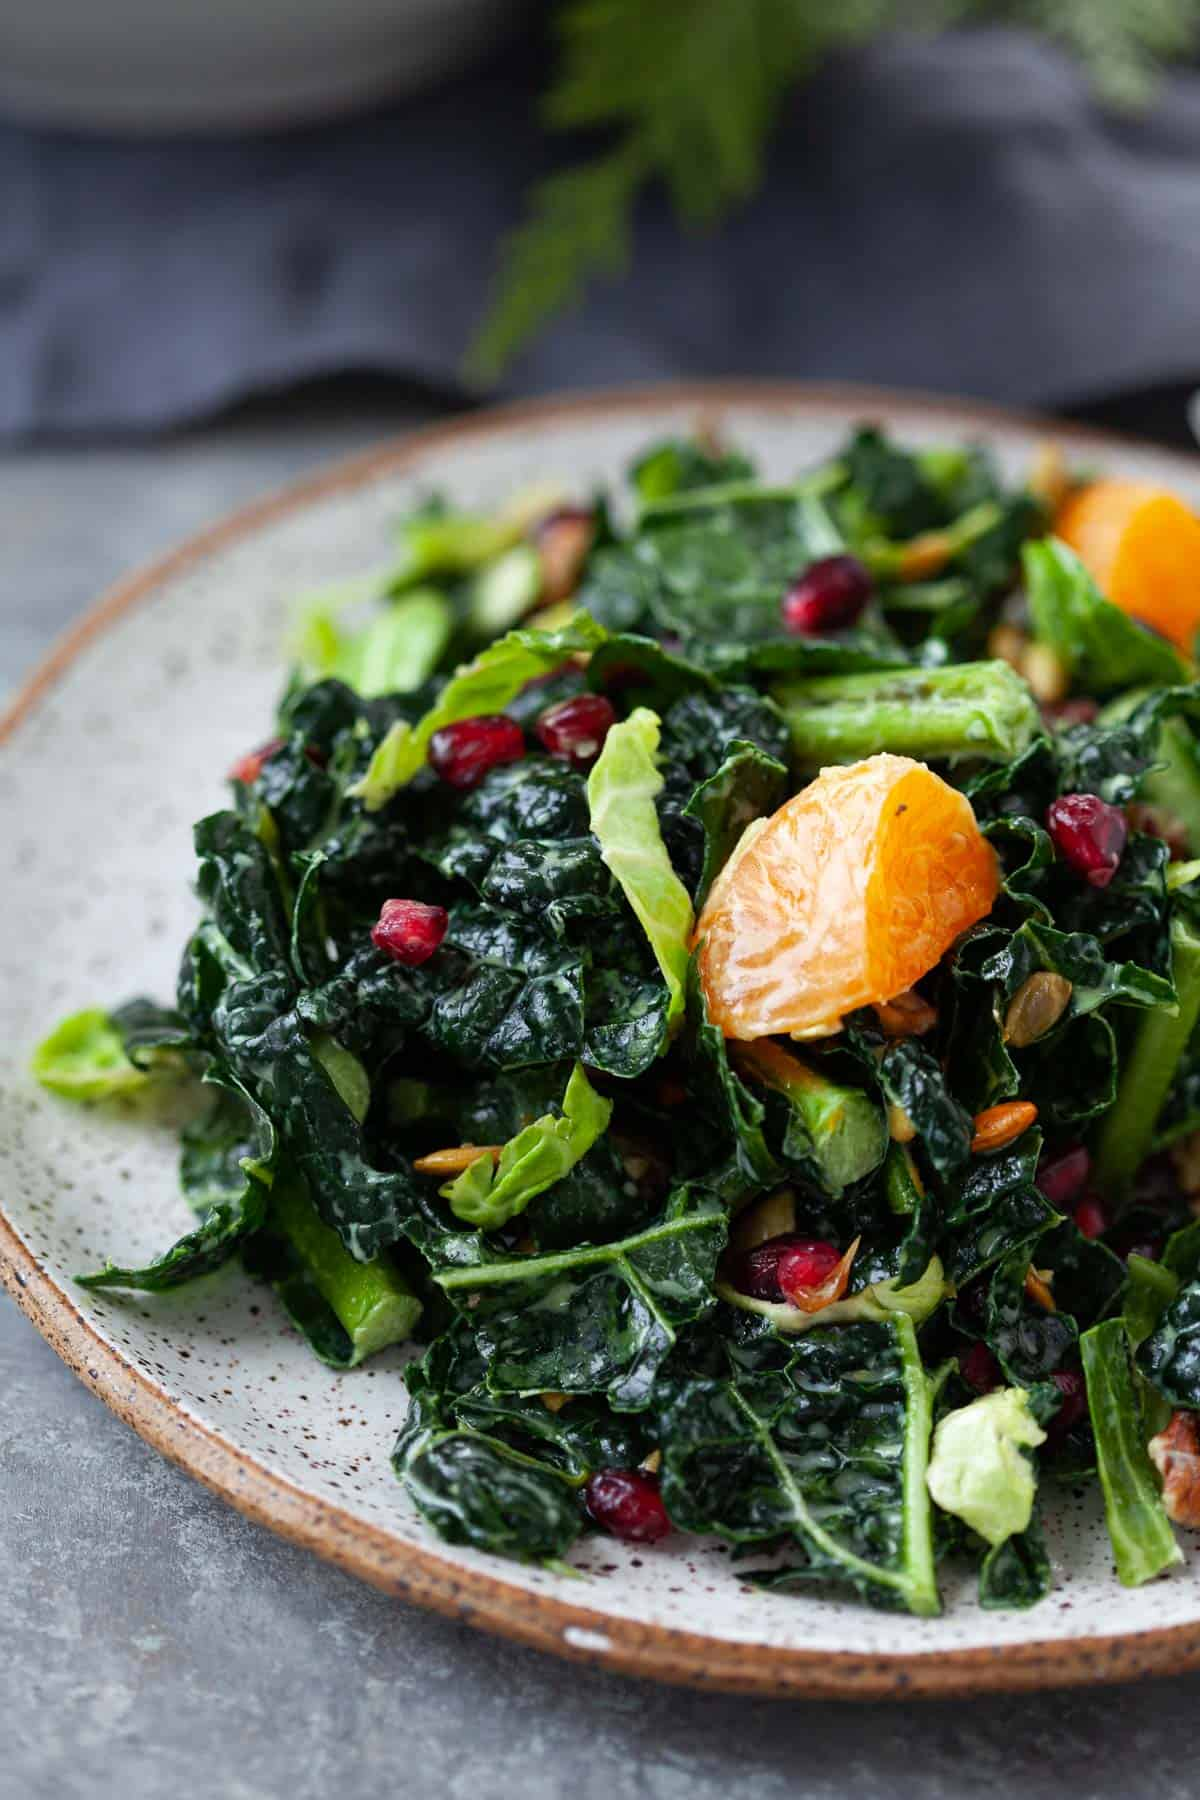 serving of kale salad with shredded brussels sprouts, pomegranate, and satsumas